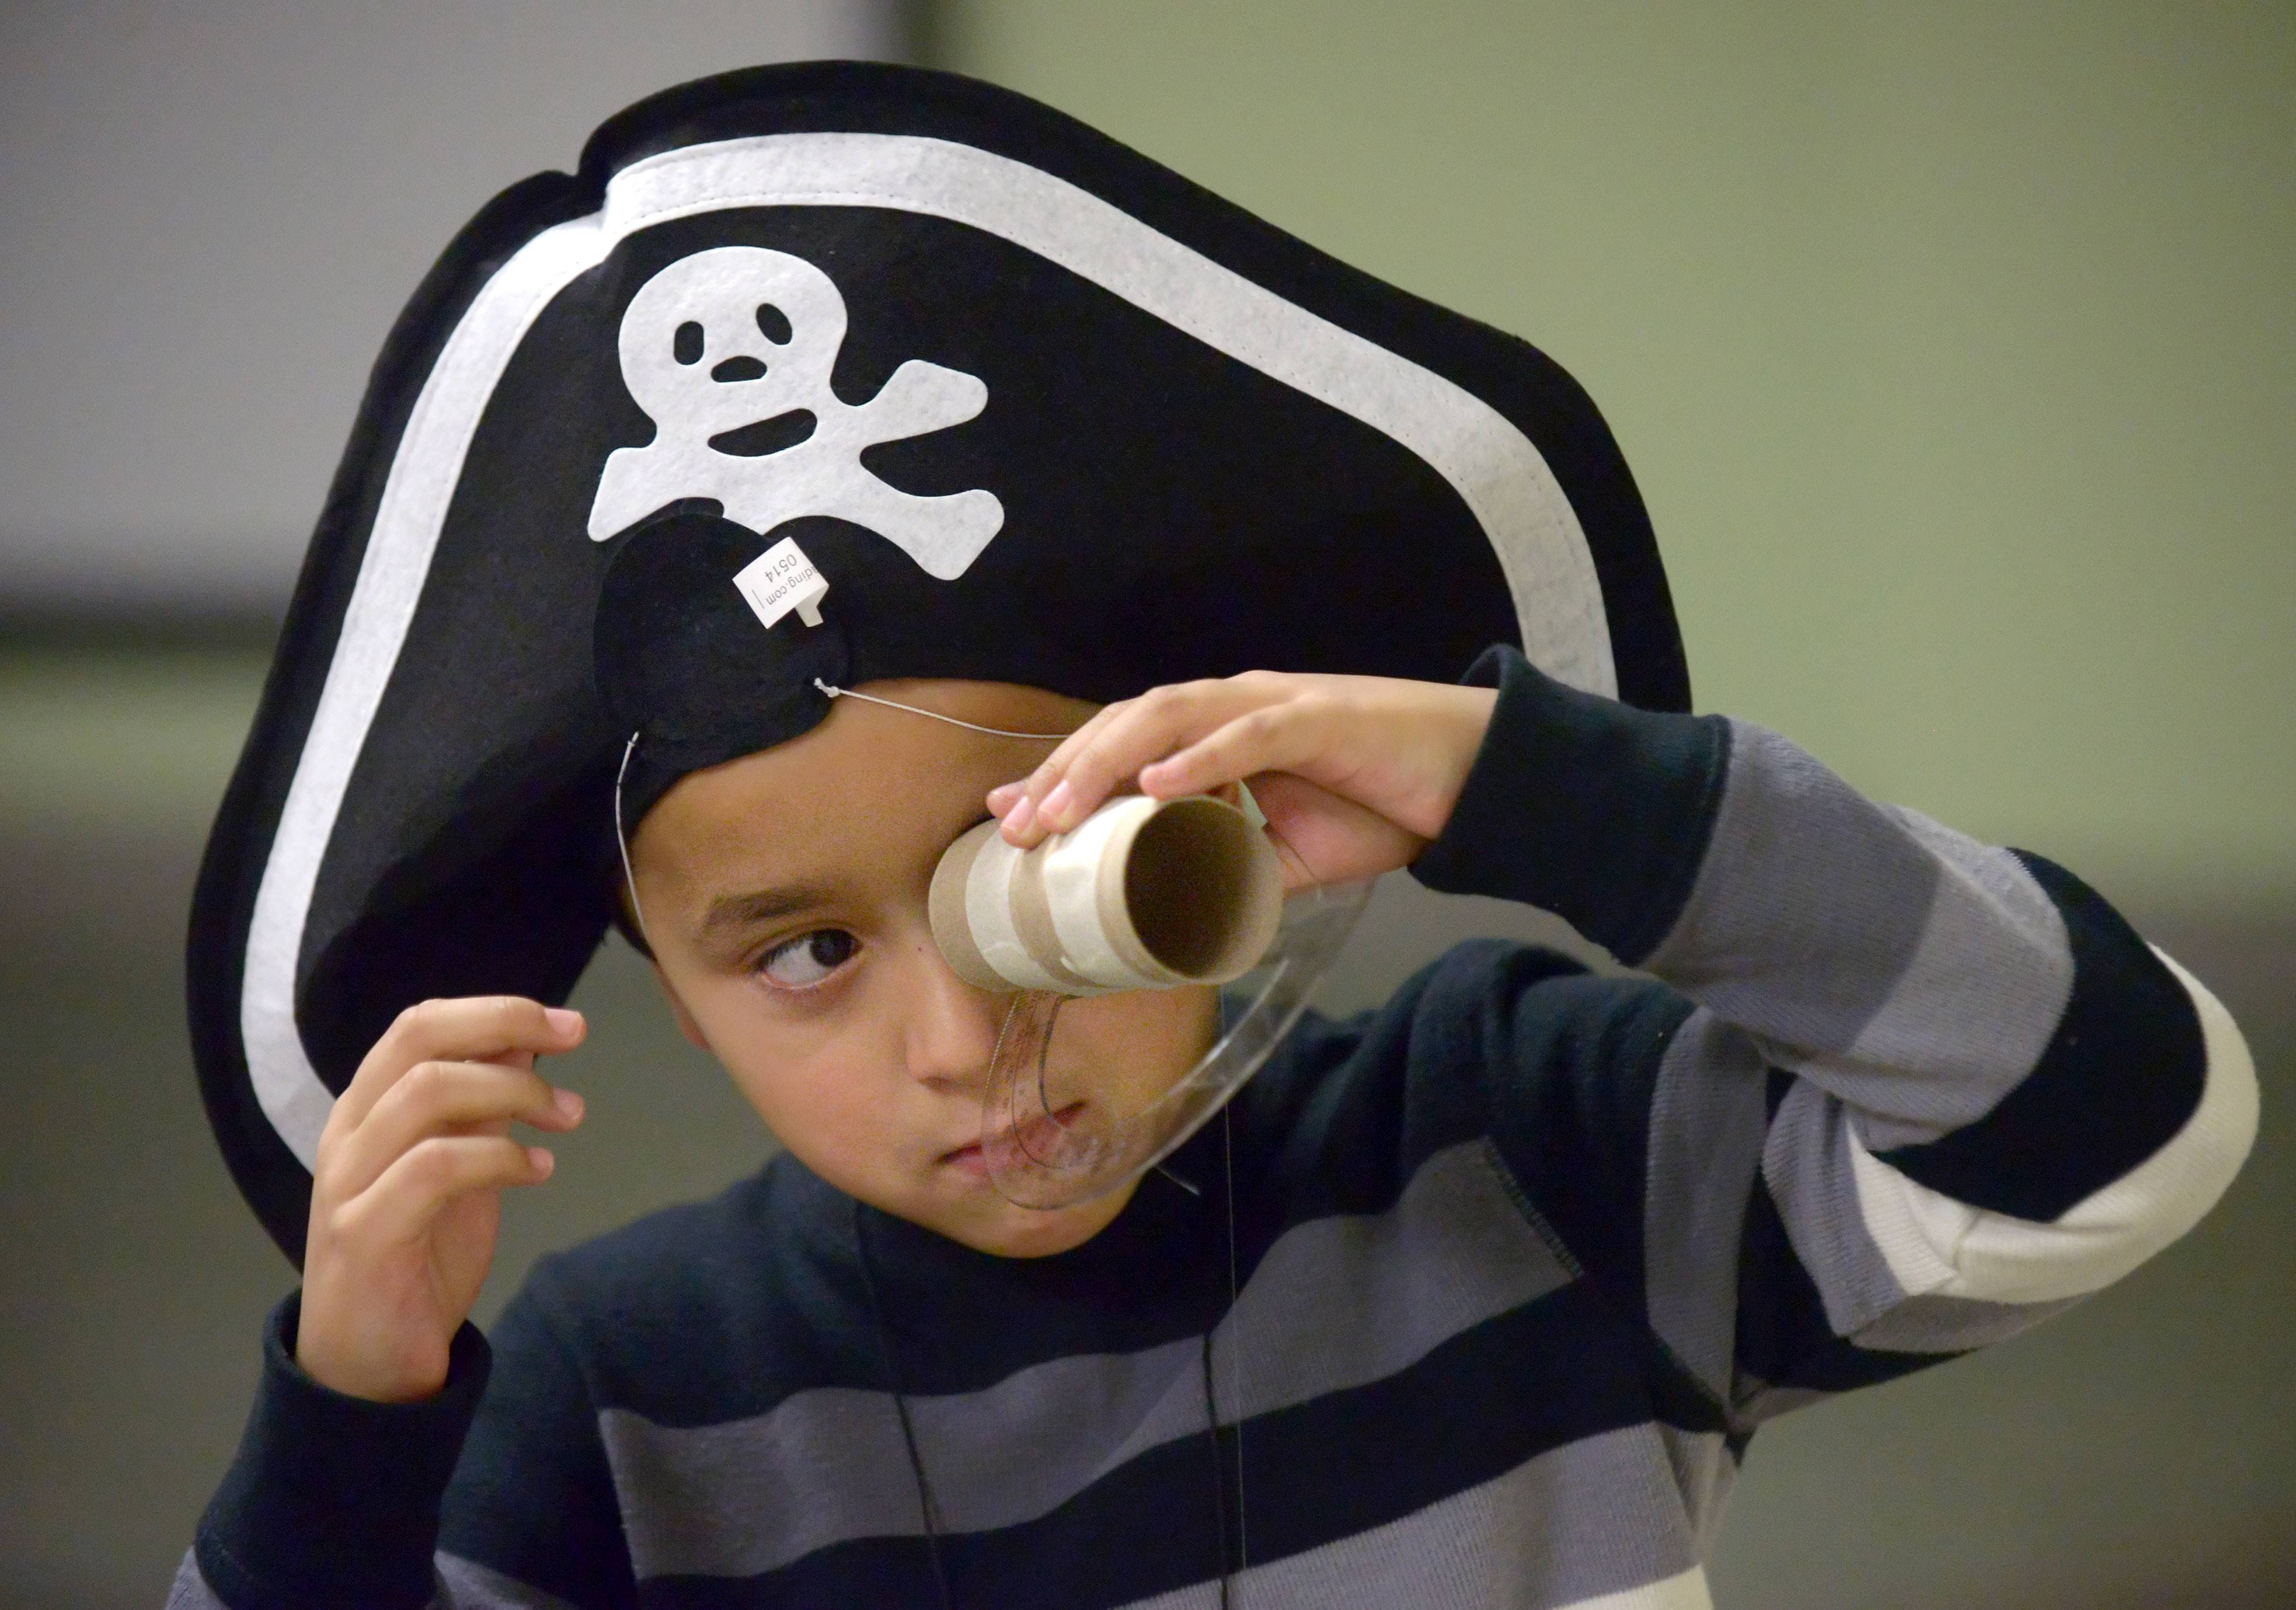 Victor Fernandez, 6, of Carpentersville, scopes for the North Star with his homemade sextant made out of a toilet paper tube, protractor and a weighted string during the Pirate Crew program at the Dundee Library in East Dundee Saturday. Children also drew their own treasure maps, designed a pirate flag, learned pirate lingo, knot tying skills and how to read a chart of the night sky.